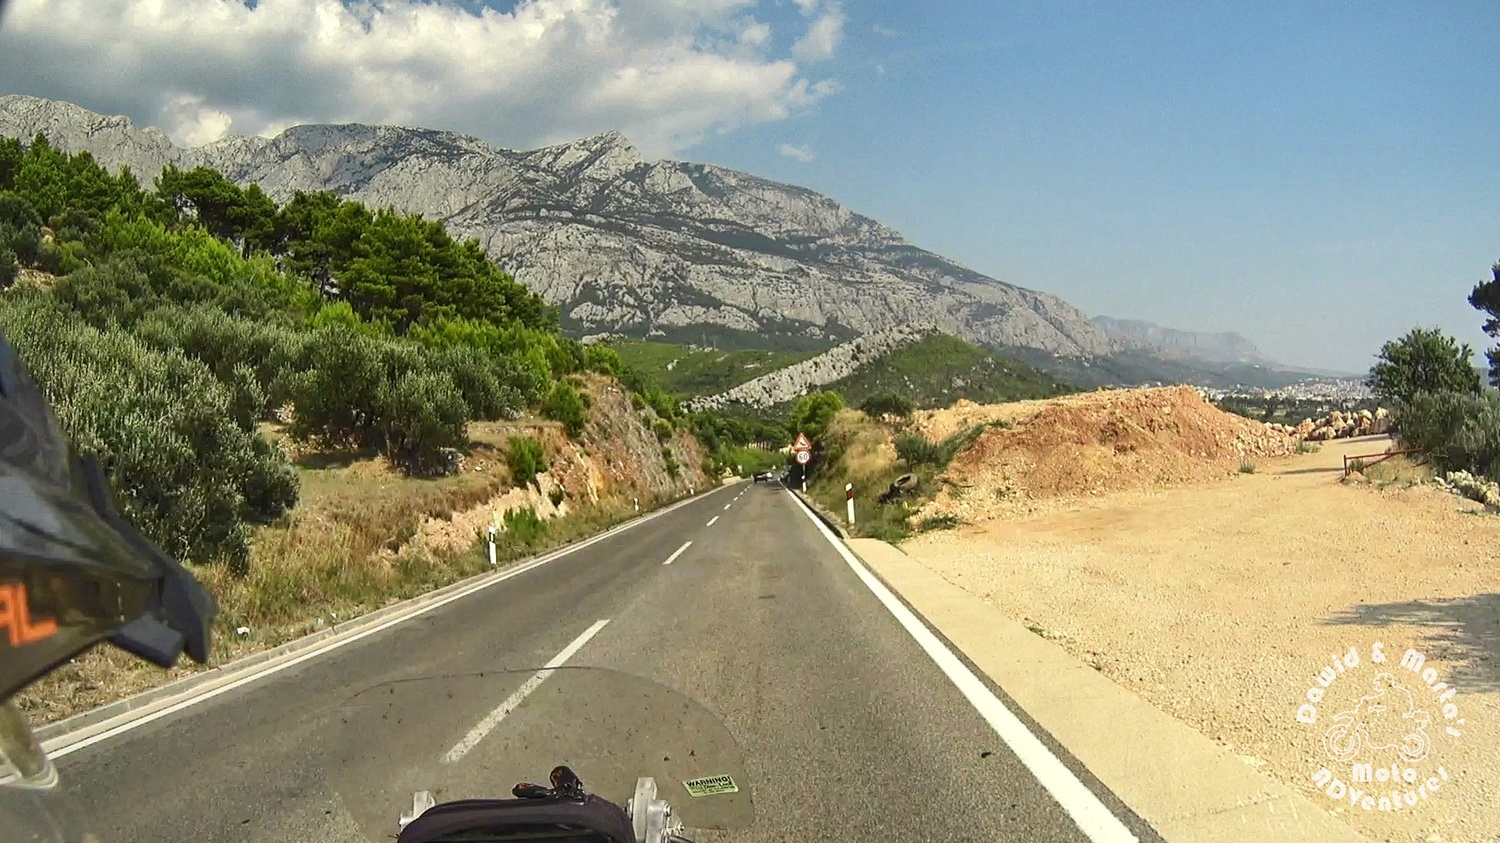 Adriatic Highway past Krvavica and before Makarska